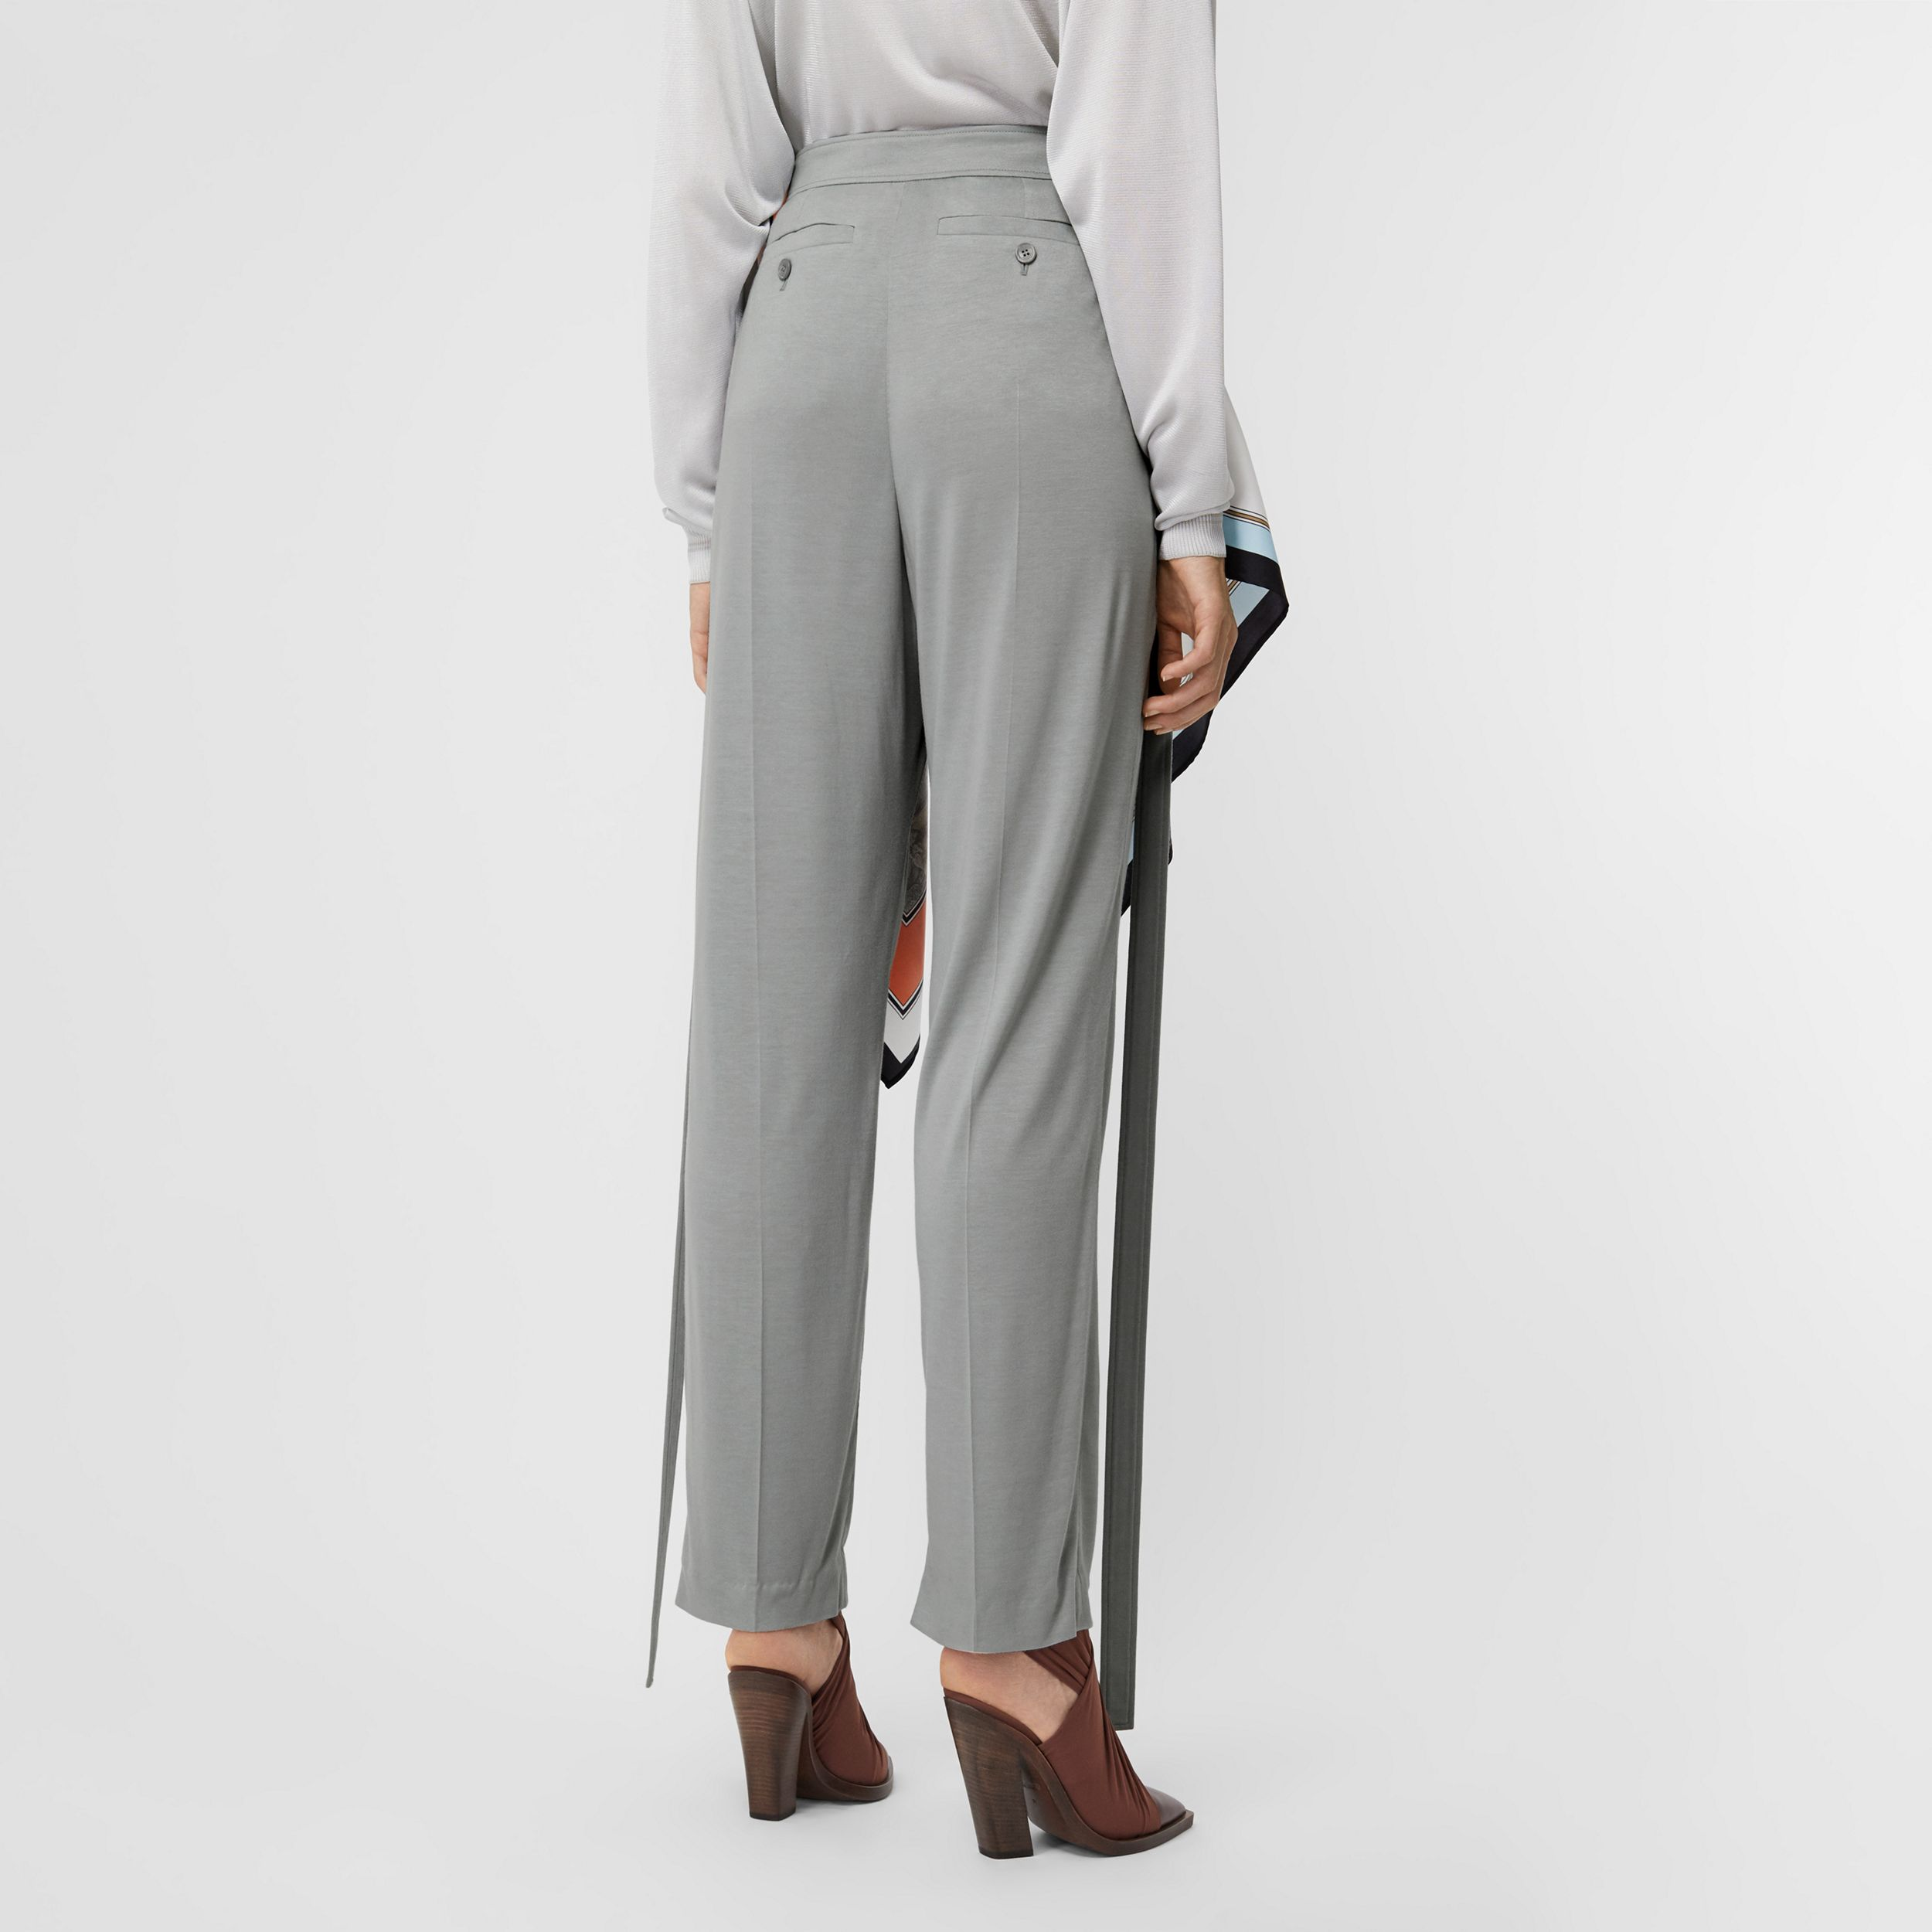 Strap Detail Jersey Tailored Trousers in Heather Melange - Women | Burberry - 3